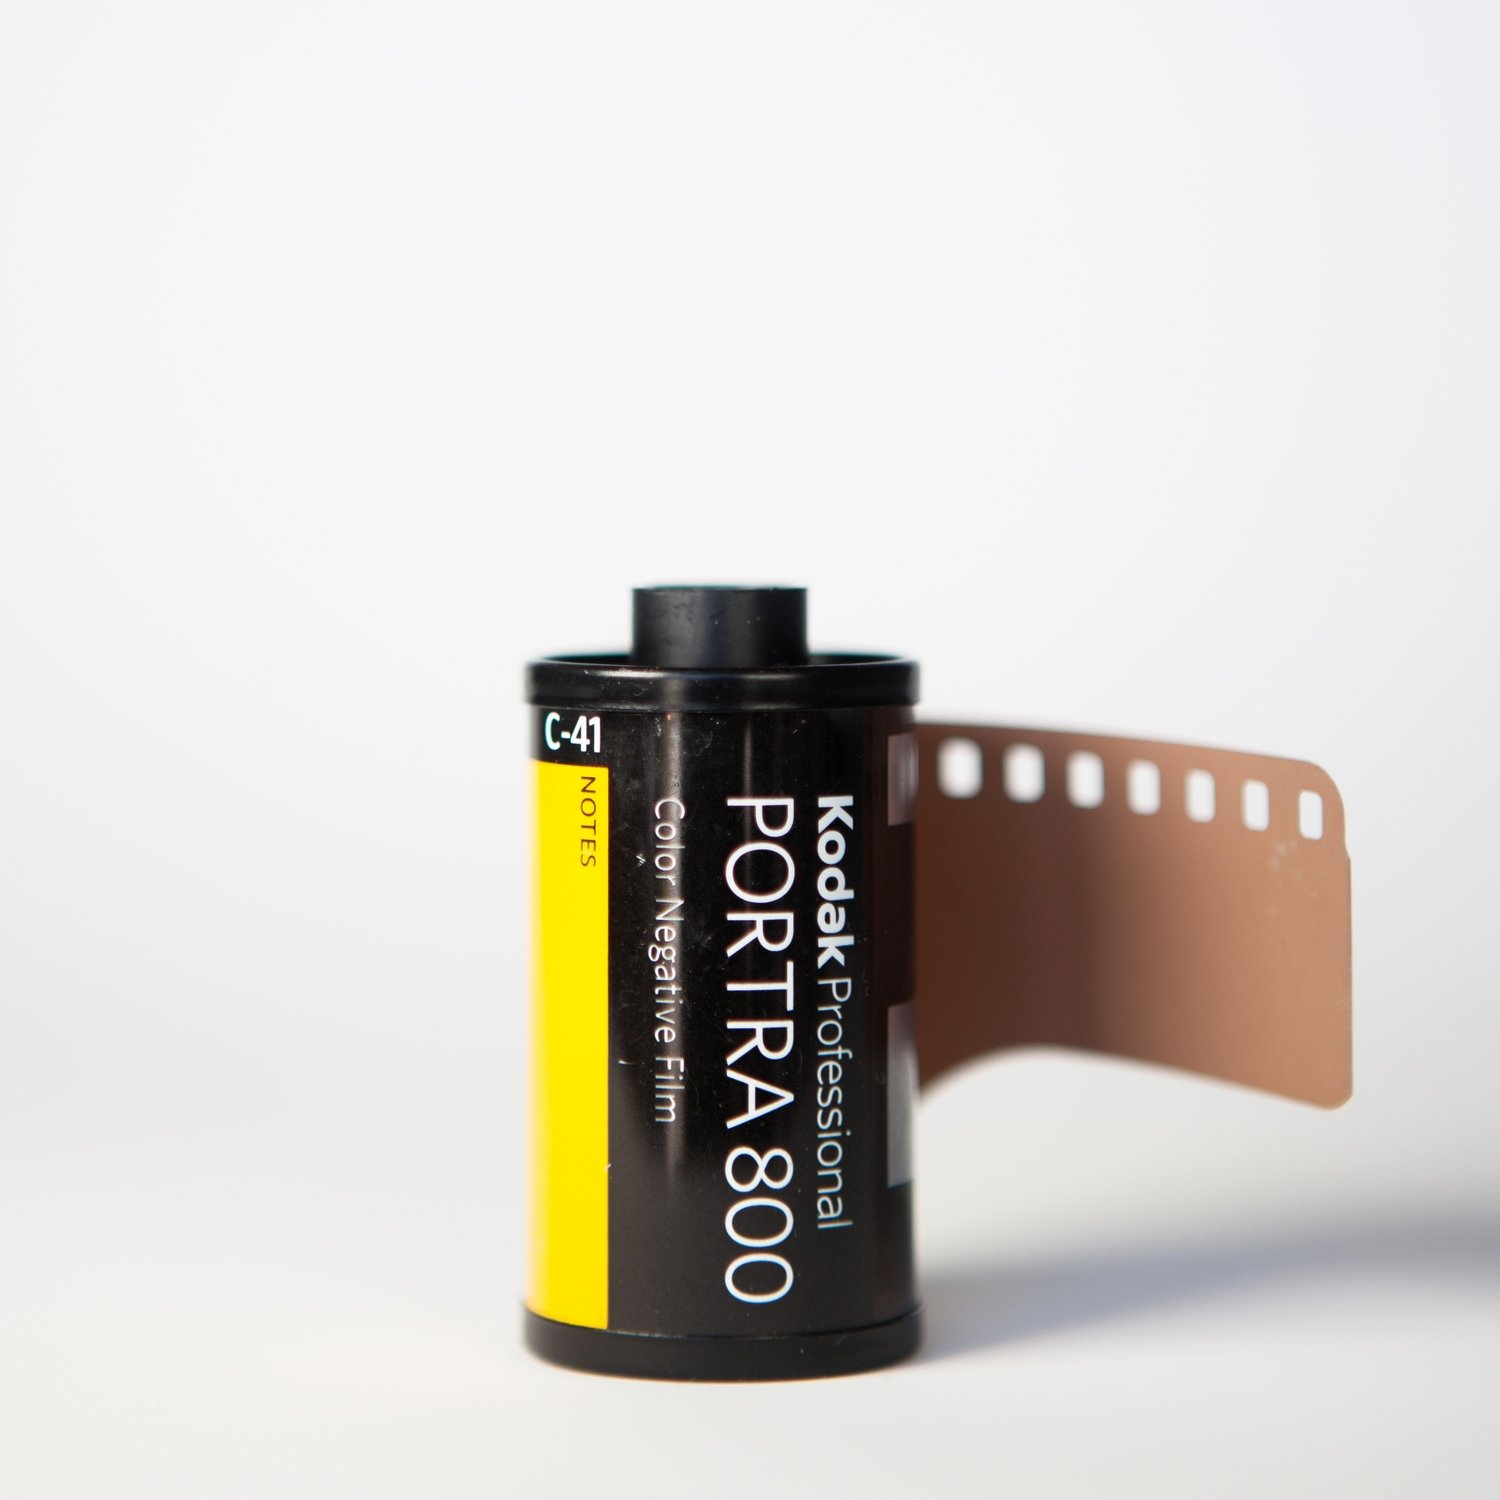 Kodak Portra 800 35mm 36 Exposures - From $9.25 a Roll!